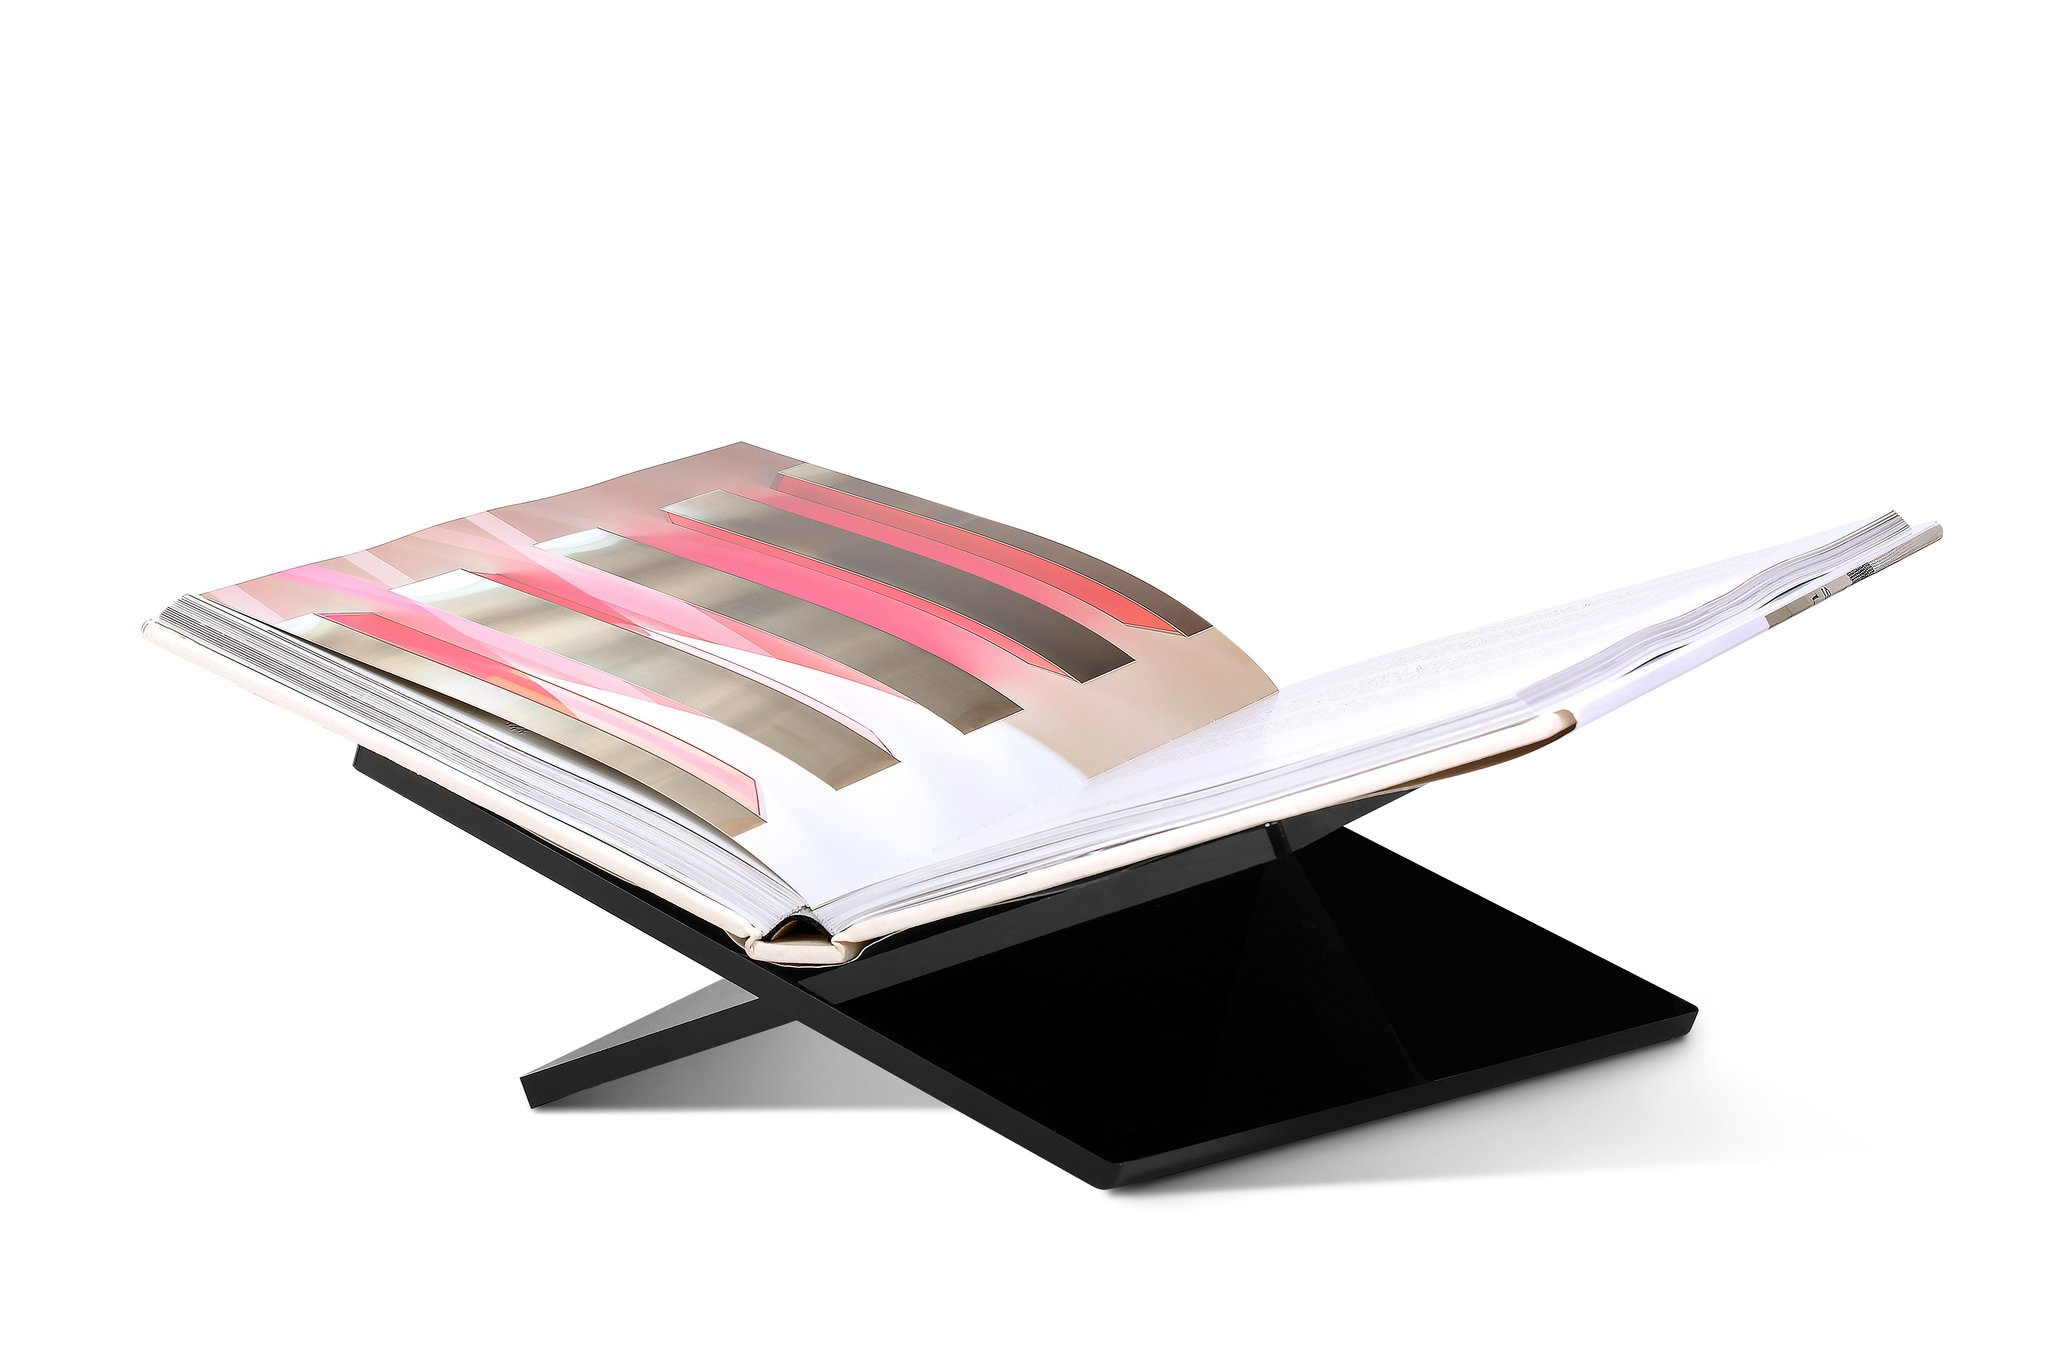 For the Home; Yours included! - Since consumption of coffee table books is an ongoing addiction for me, this bookstand will be making its way under my tree this year. Simple, striking and beautiful on its own, this bookstand will help you show off any favorite and inspiring page, keeping you reading from cover to cover.